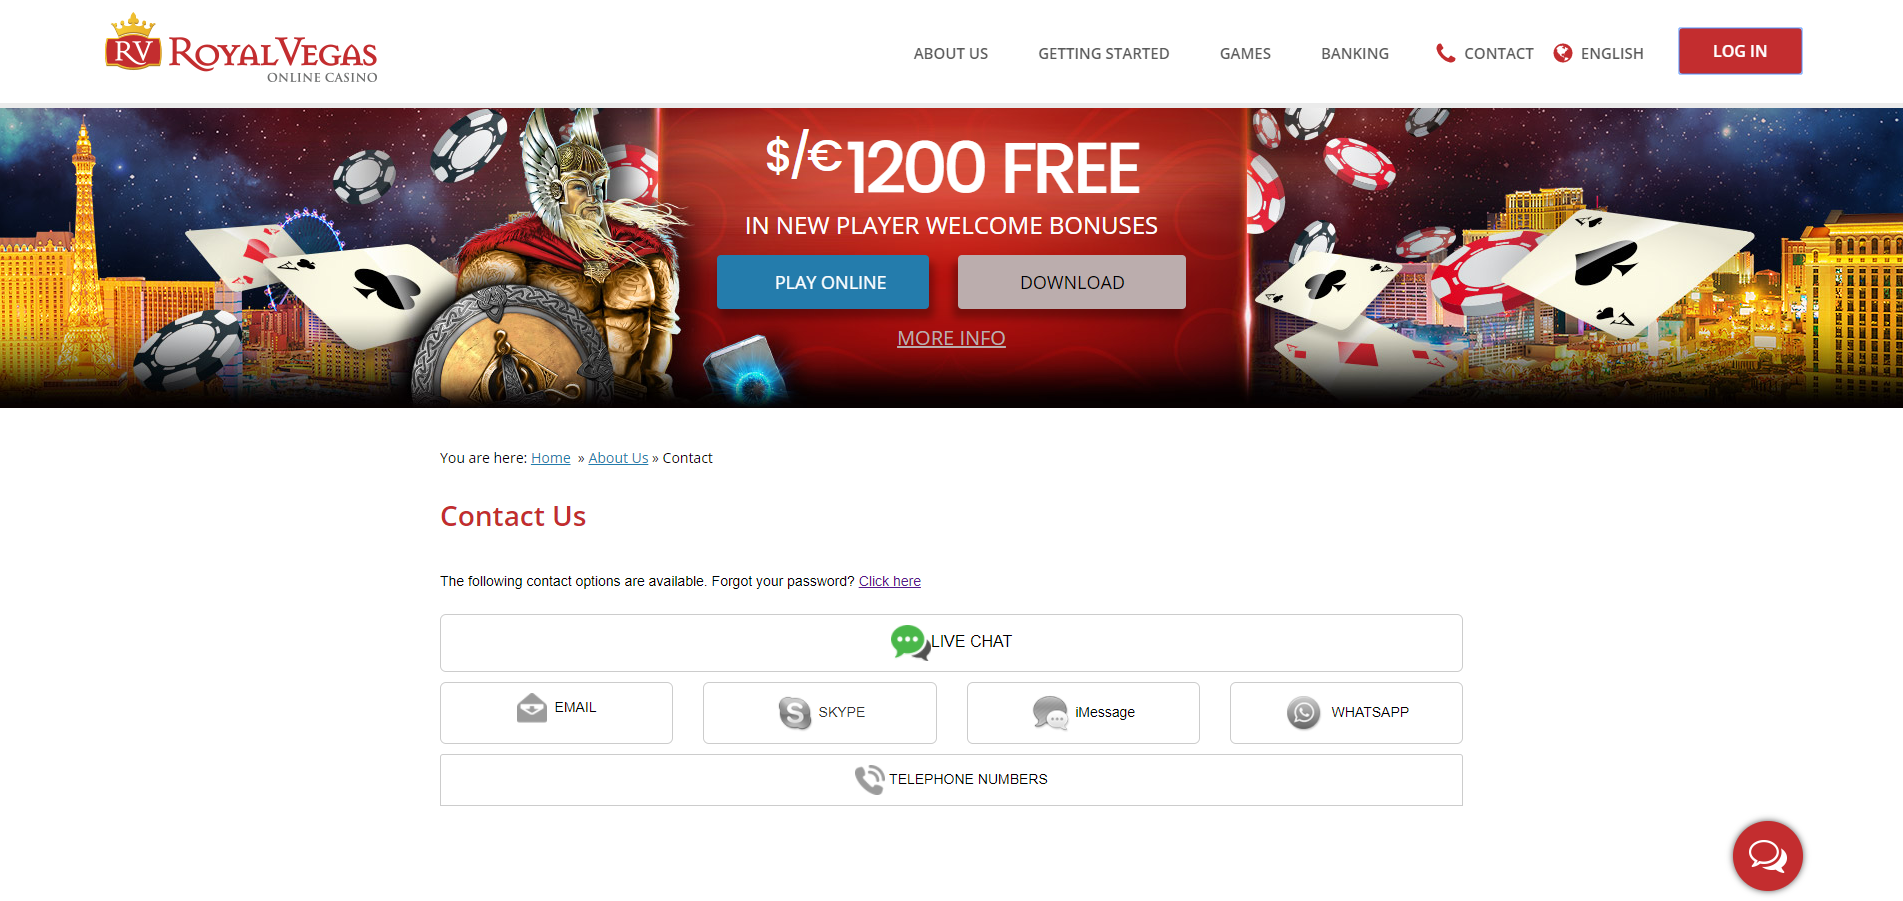 FreeSpinsCasino Online Review With Promotions & Bonuses